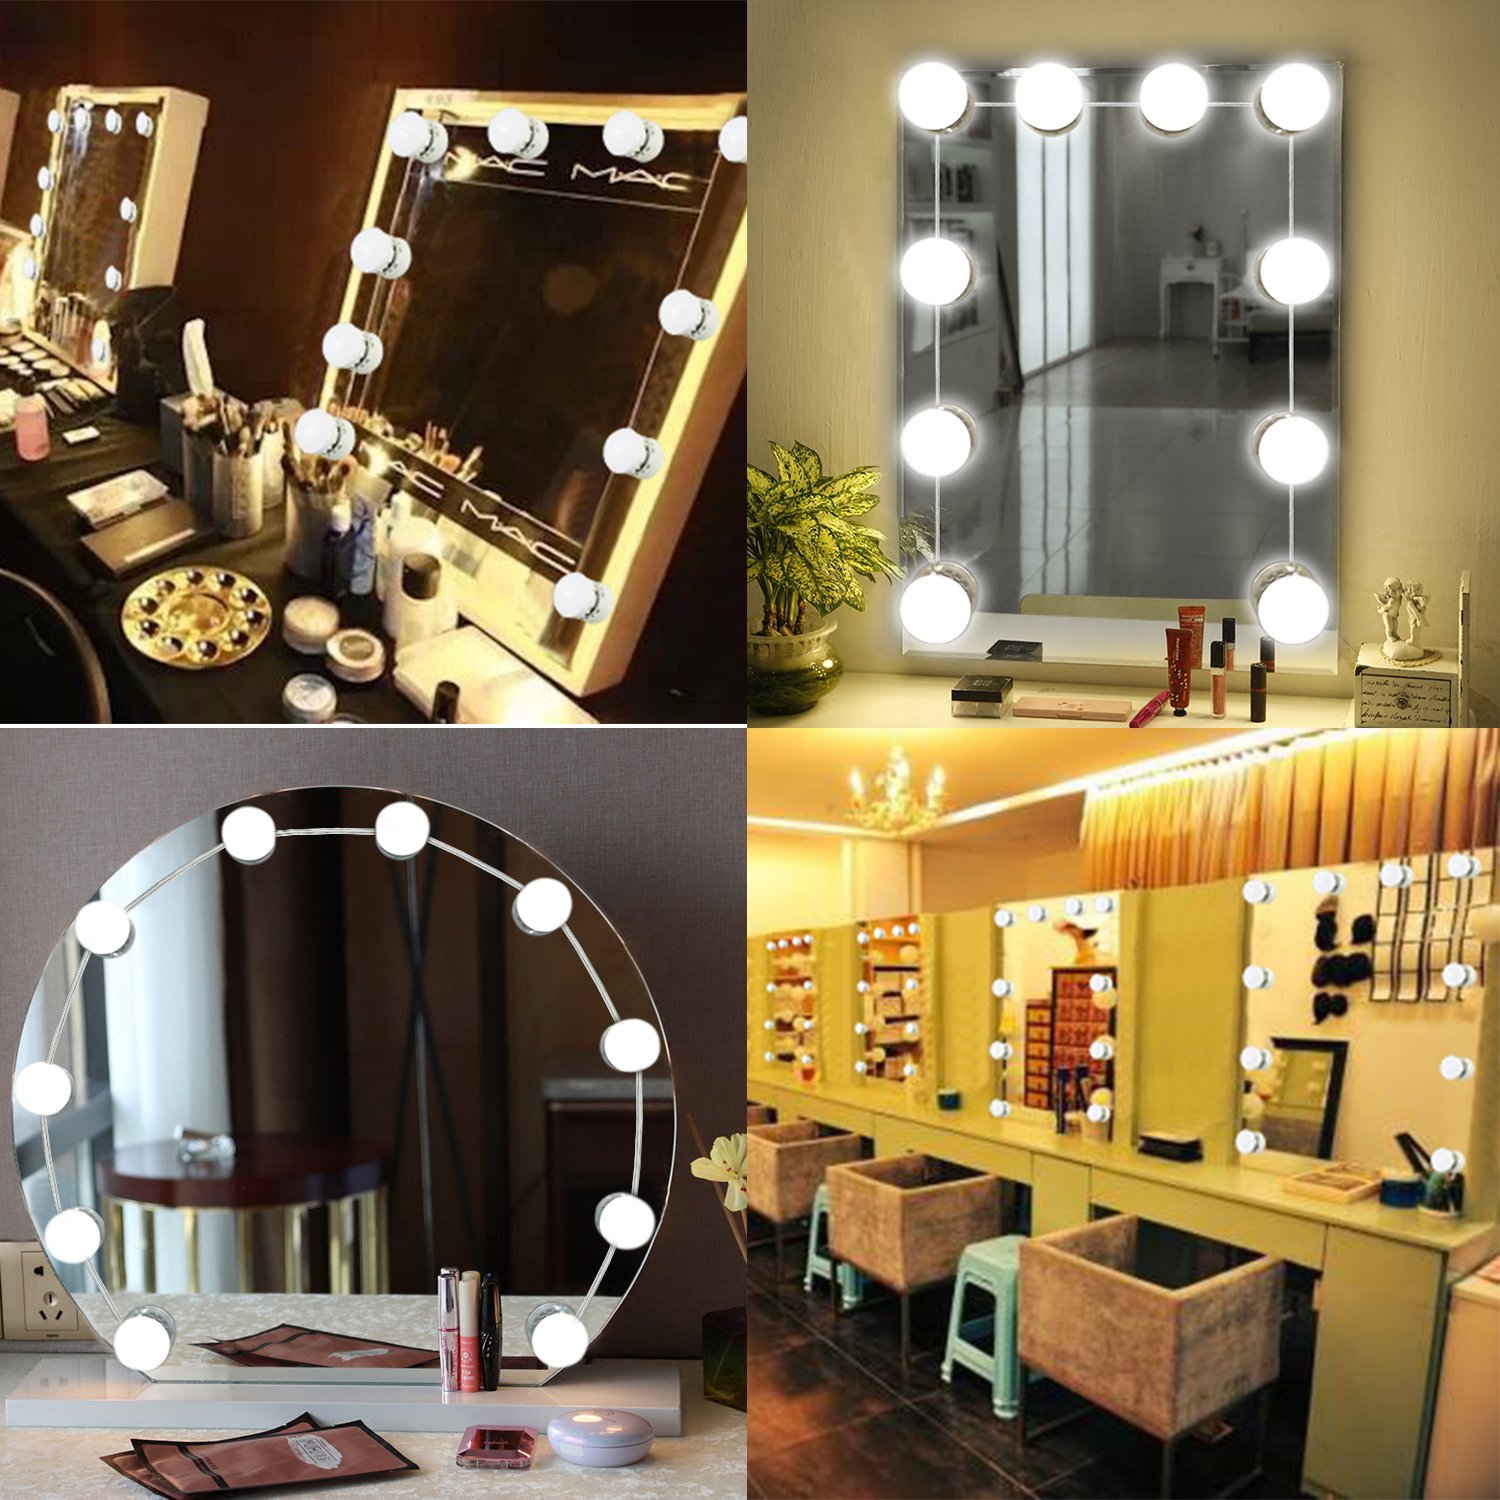 Mirror Lights, UNIFUN Hollywood Style LED Makeup Mirror Lights with 10 Dimmable Bulbs, USB Powered Flexible Lighting Fixture 7000K for Bathroom, Makeup Dressing Table (Mirror Not Include) (Button) by UNIFUN (Image #2)